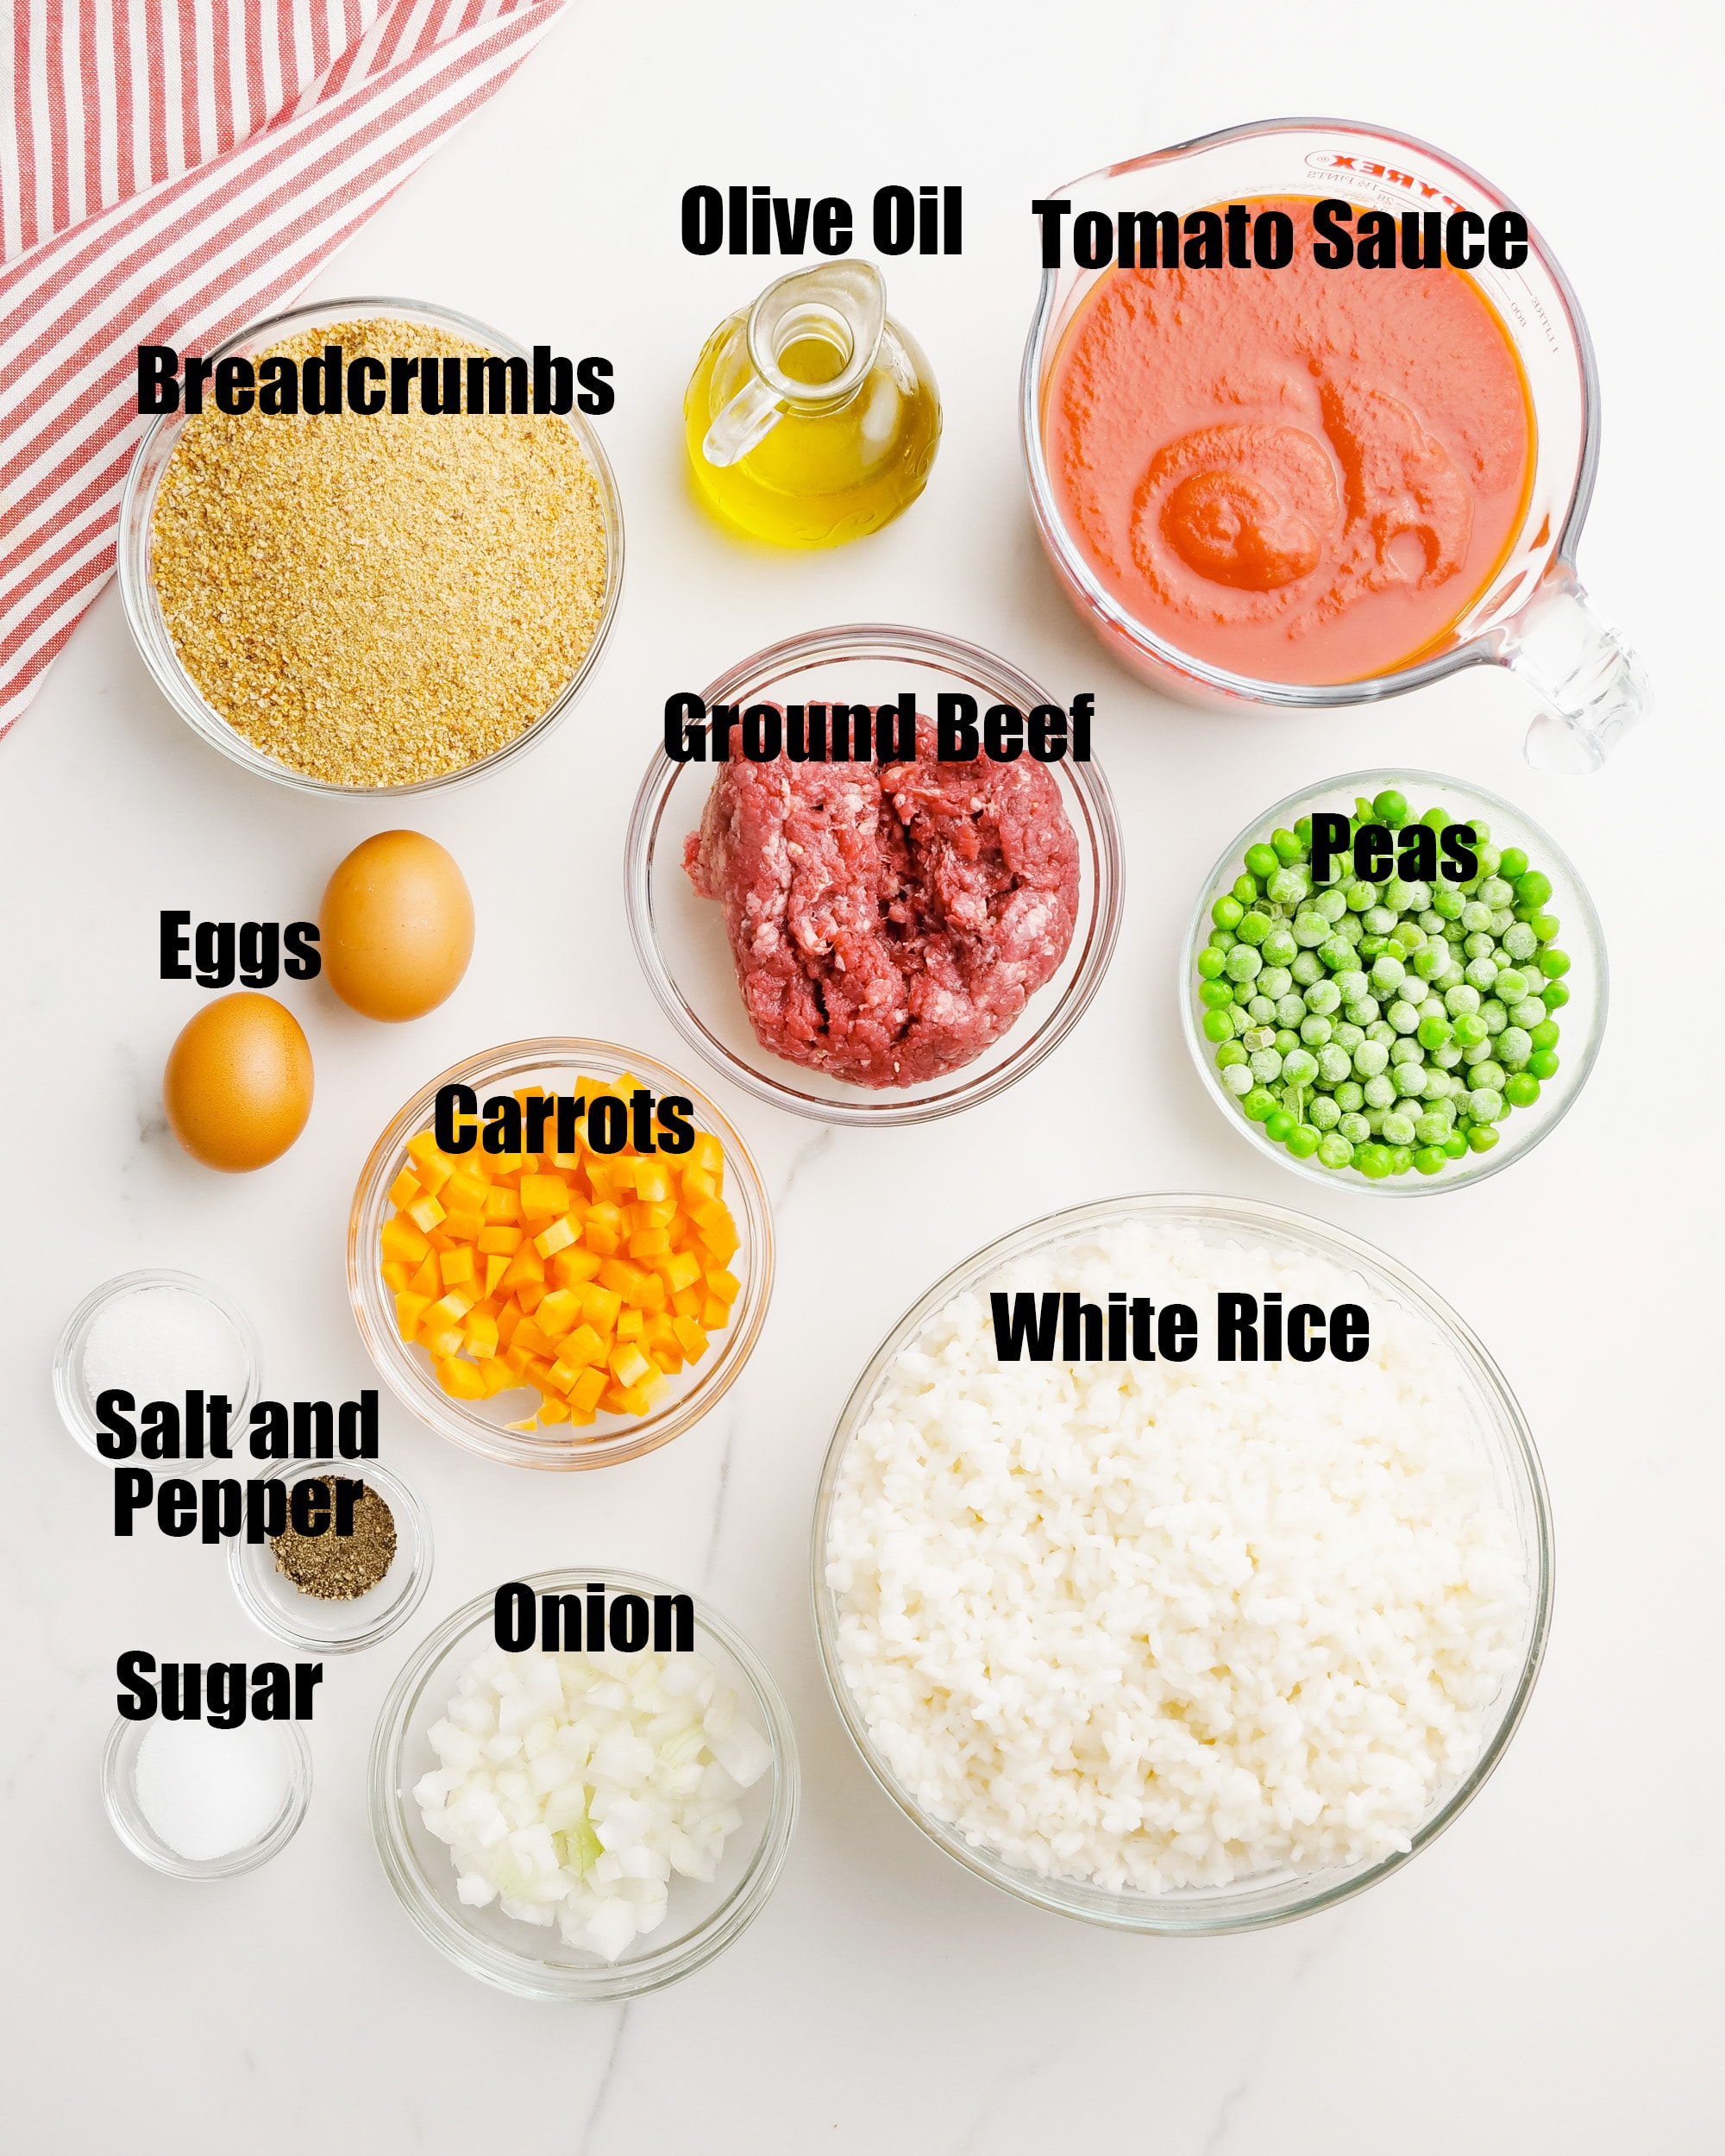 The ingredients needed to make arancini rice balls.